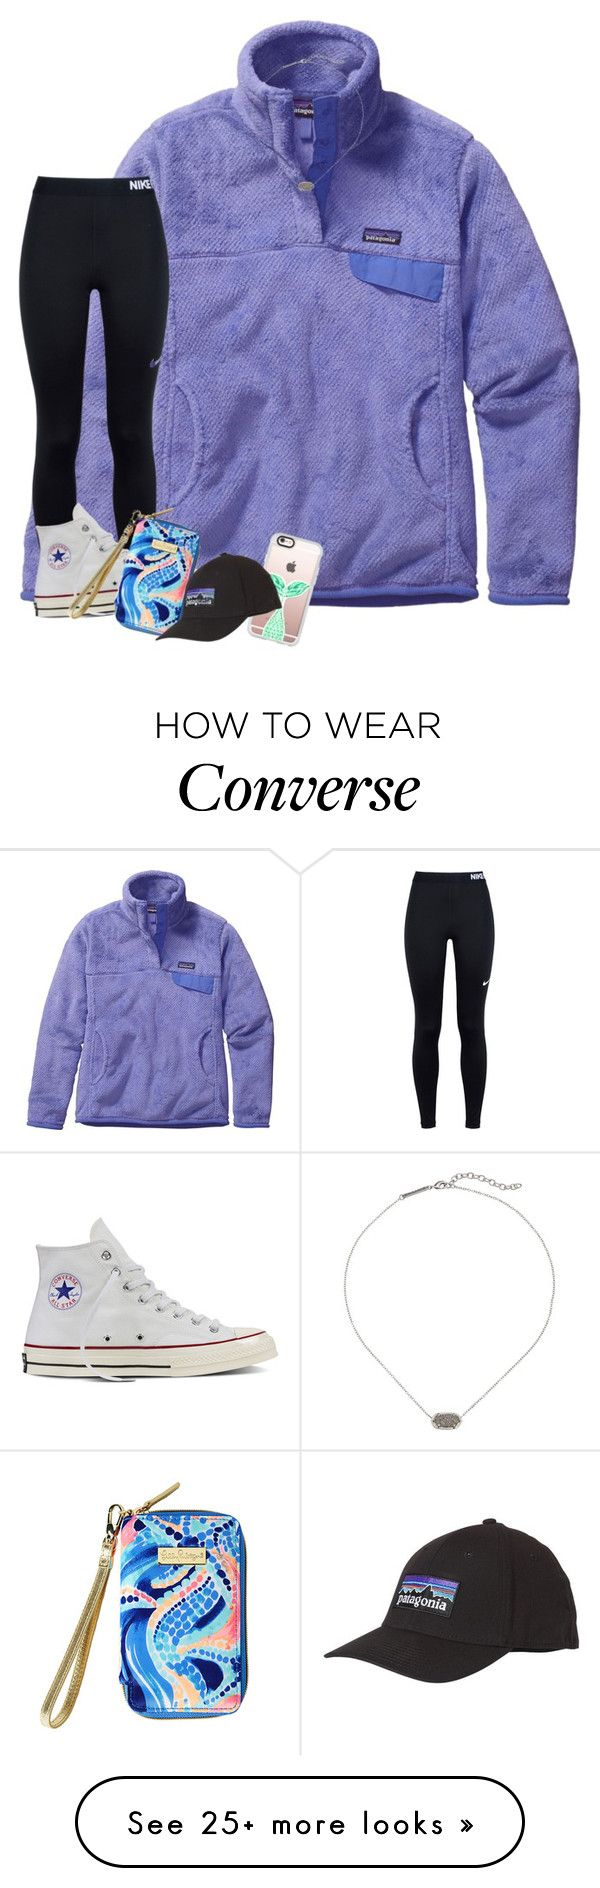 """""""went to the lilly store for the first time last week and got this wristlet!!"""" by morganmestan on Polyvore featuring Patagonia, NIKE, Converse, Lilly Pulitzer, Kendra Scott and Casetify"""